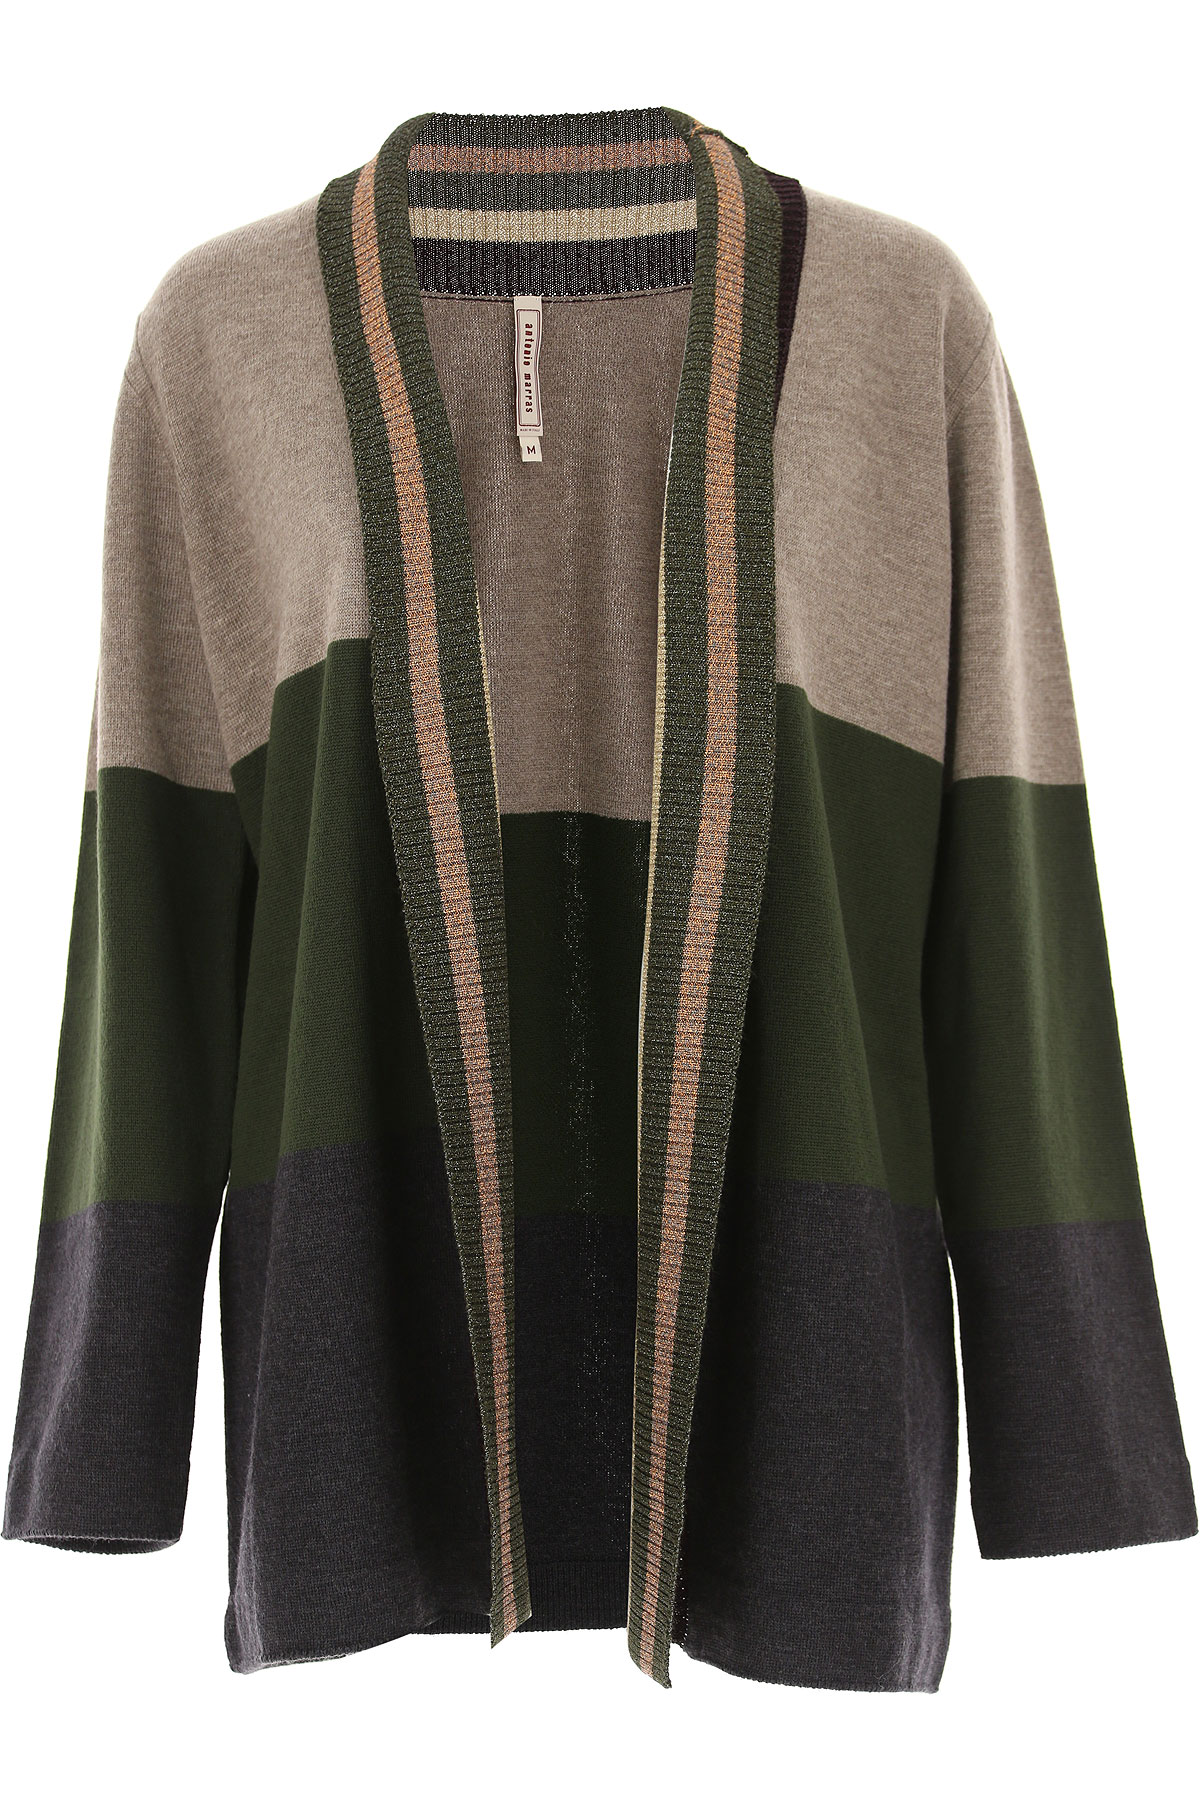 Image of Antonio Marras Sweater for Women Jumper, Grey, Wool, 2017, 10 4 6 8